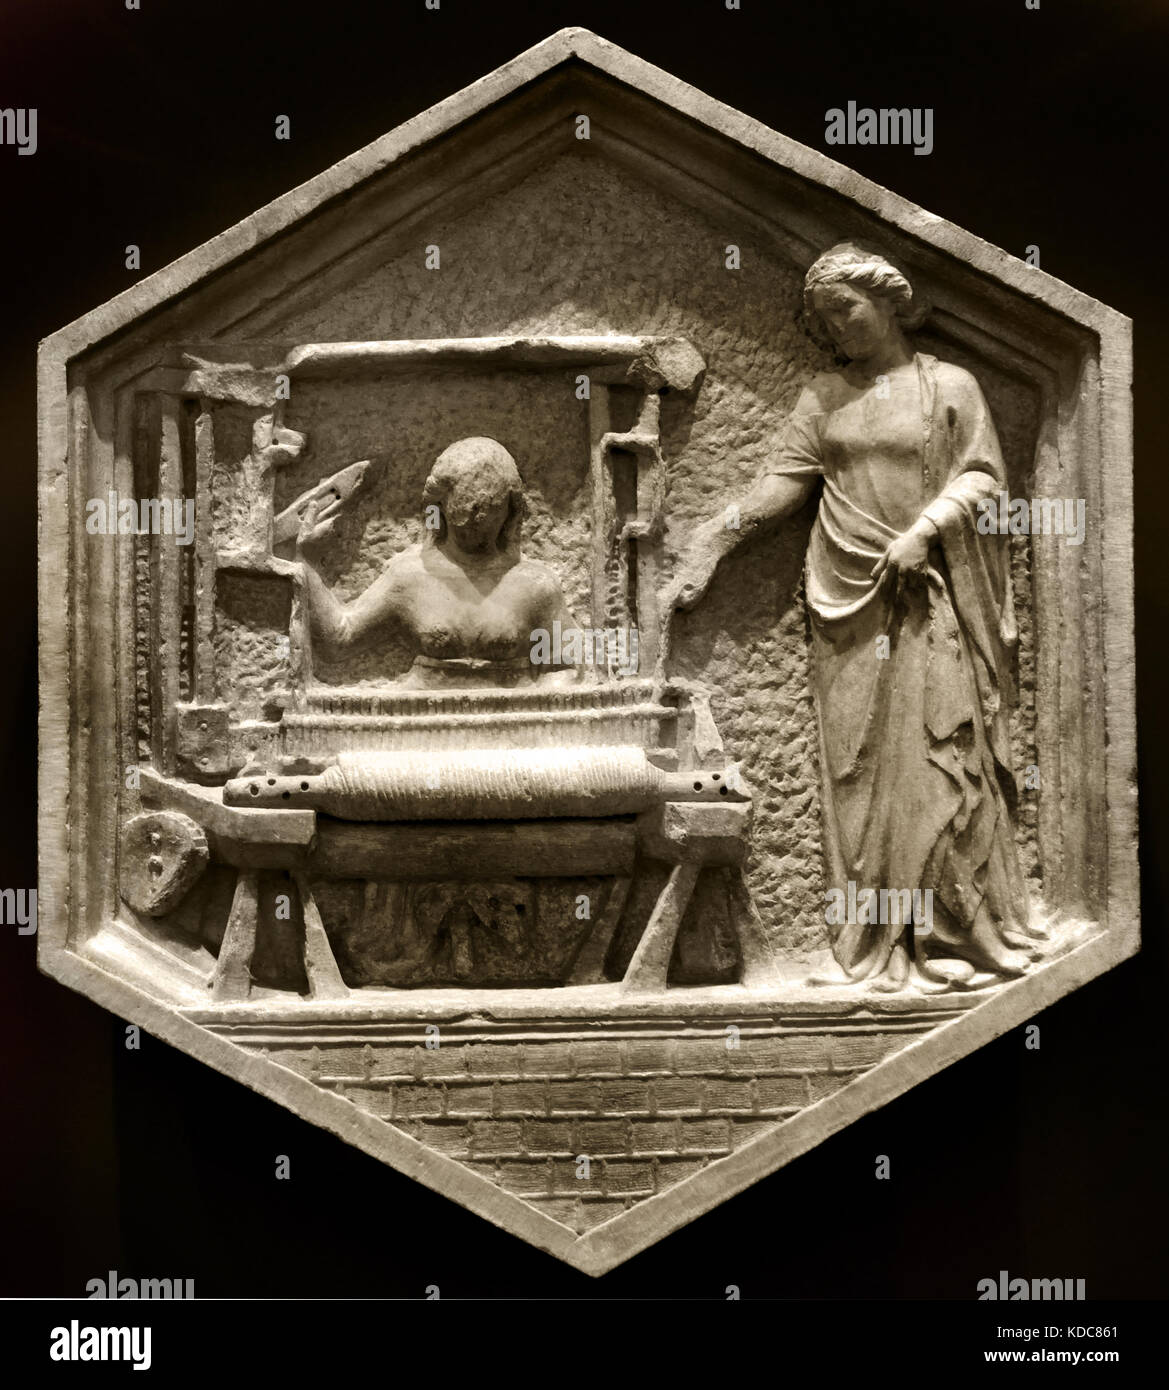 Textile Production: Andrea Pisano, 1334-36. the woman on the right  identified as Minerva, the inventor of weaving - Stock Image